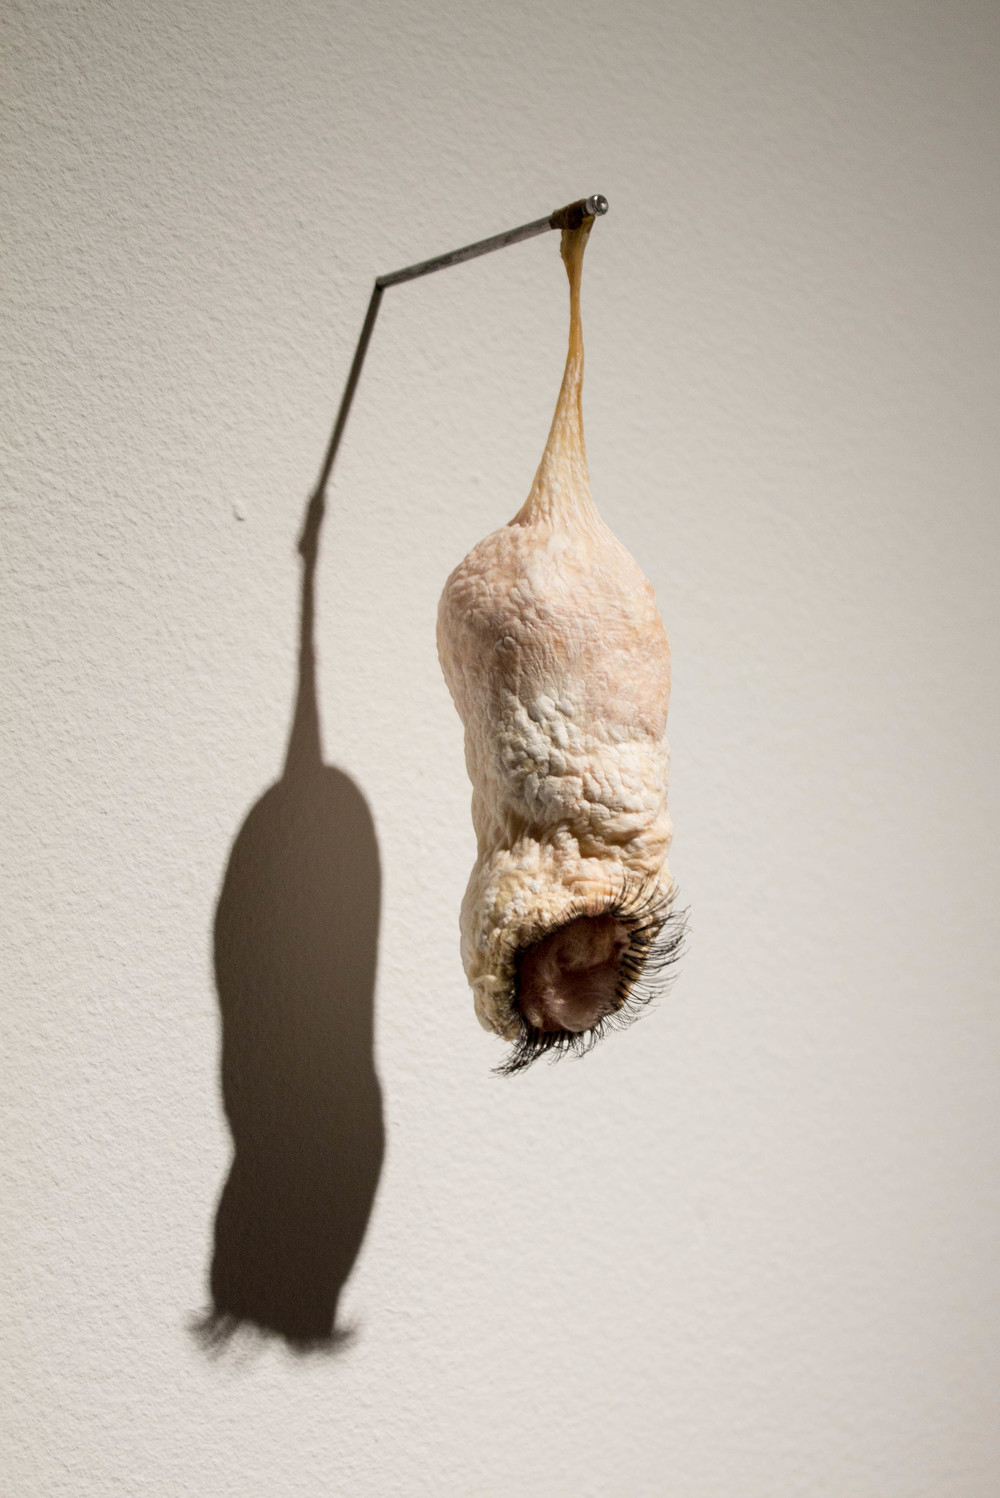 Dangle   - 2013 - beef intestine, fiberglass insulation, and false eyelashes - 6 x 2 x 2 in.